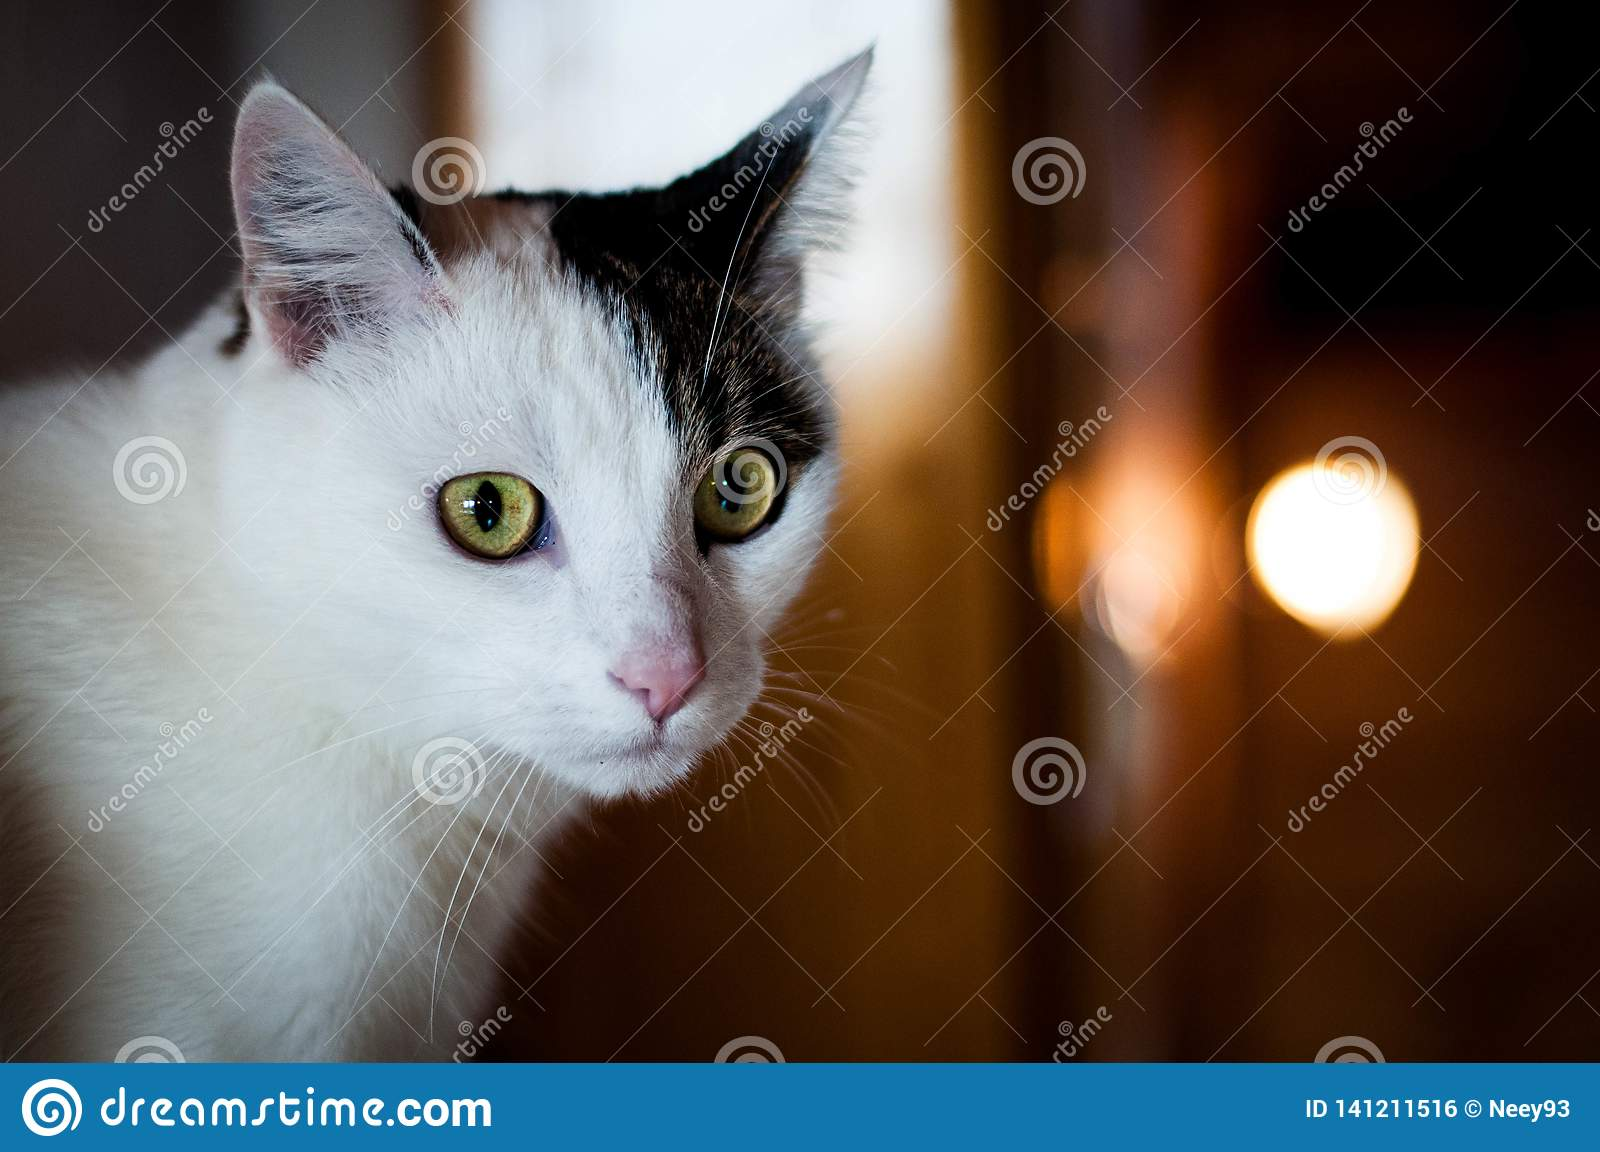 Cute white cat with black spot starring looking into the camera